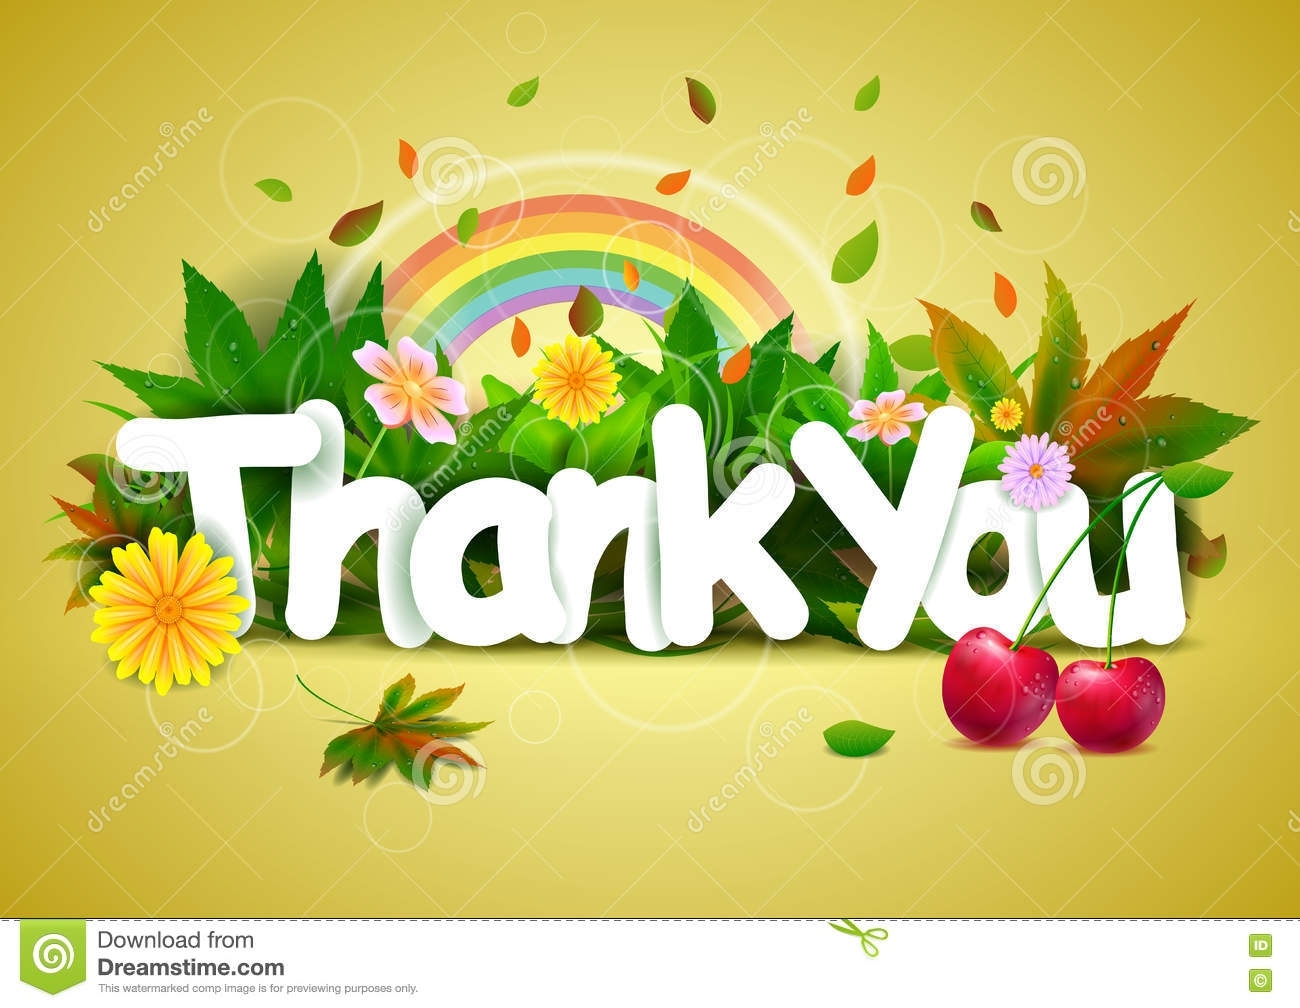 thank you wallpaper background stock vector - illustration of